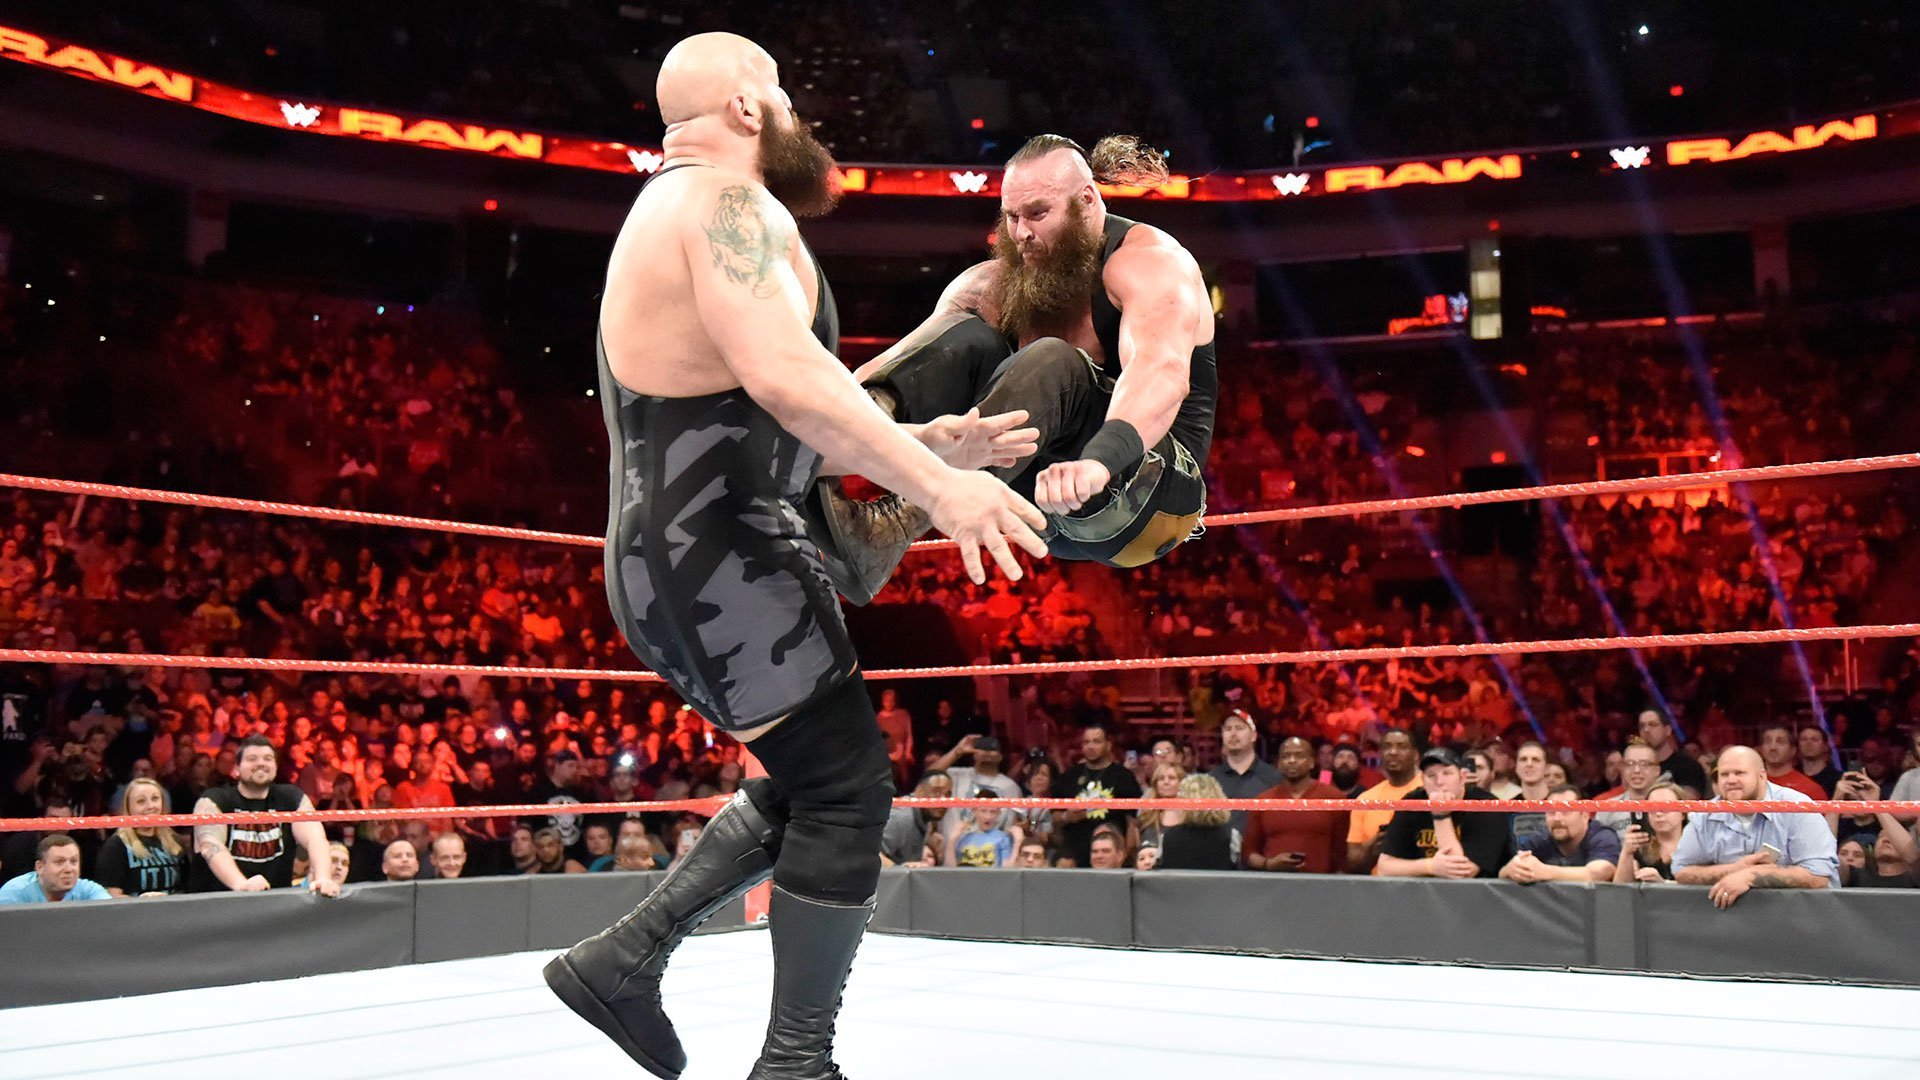 Strowman leaps to hit a dropkick.